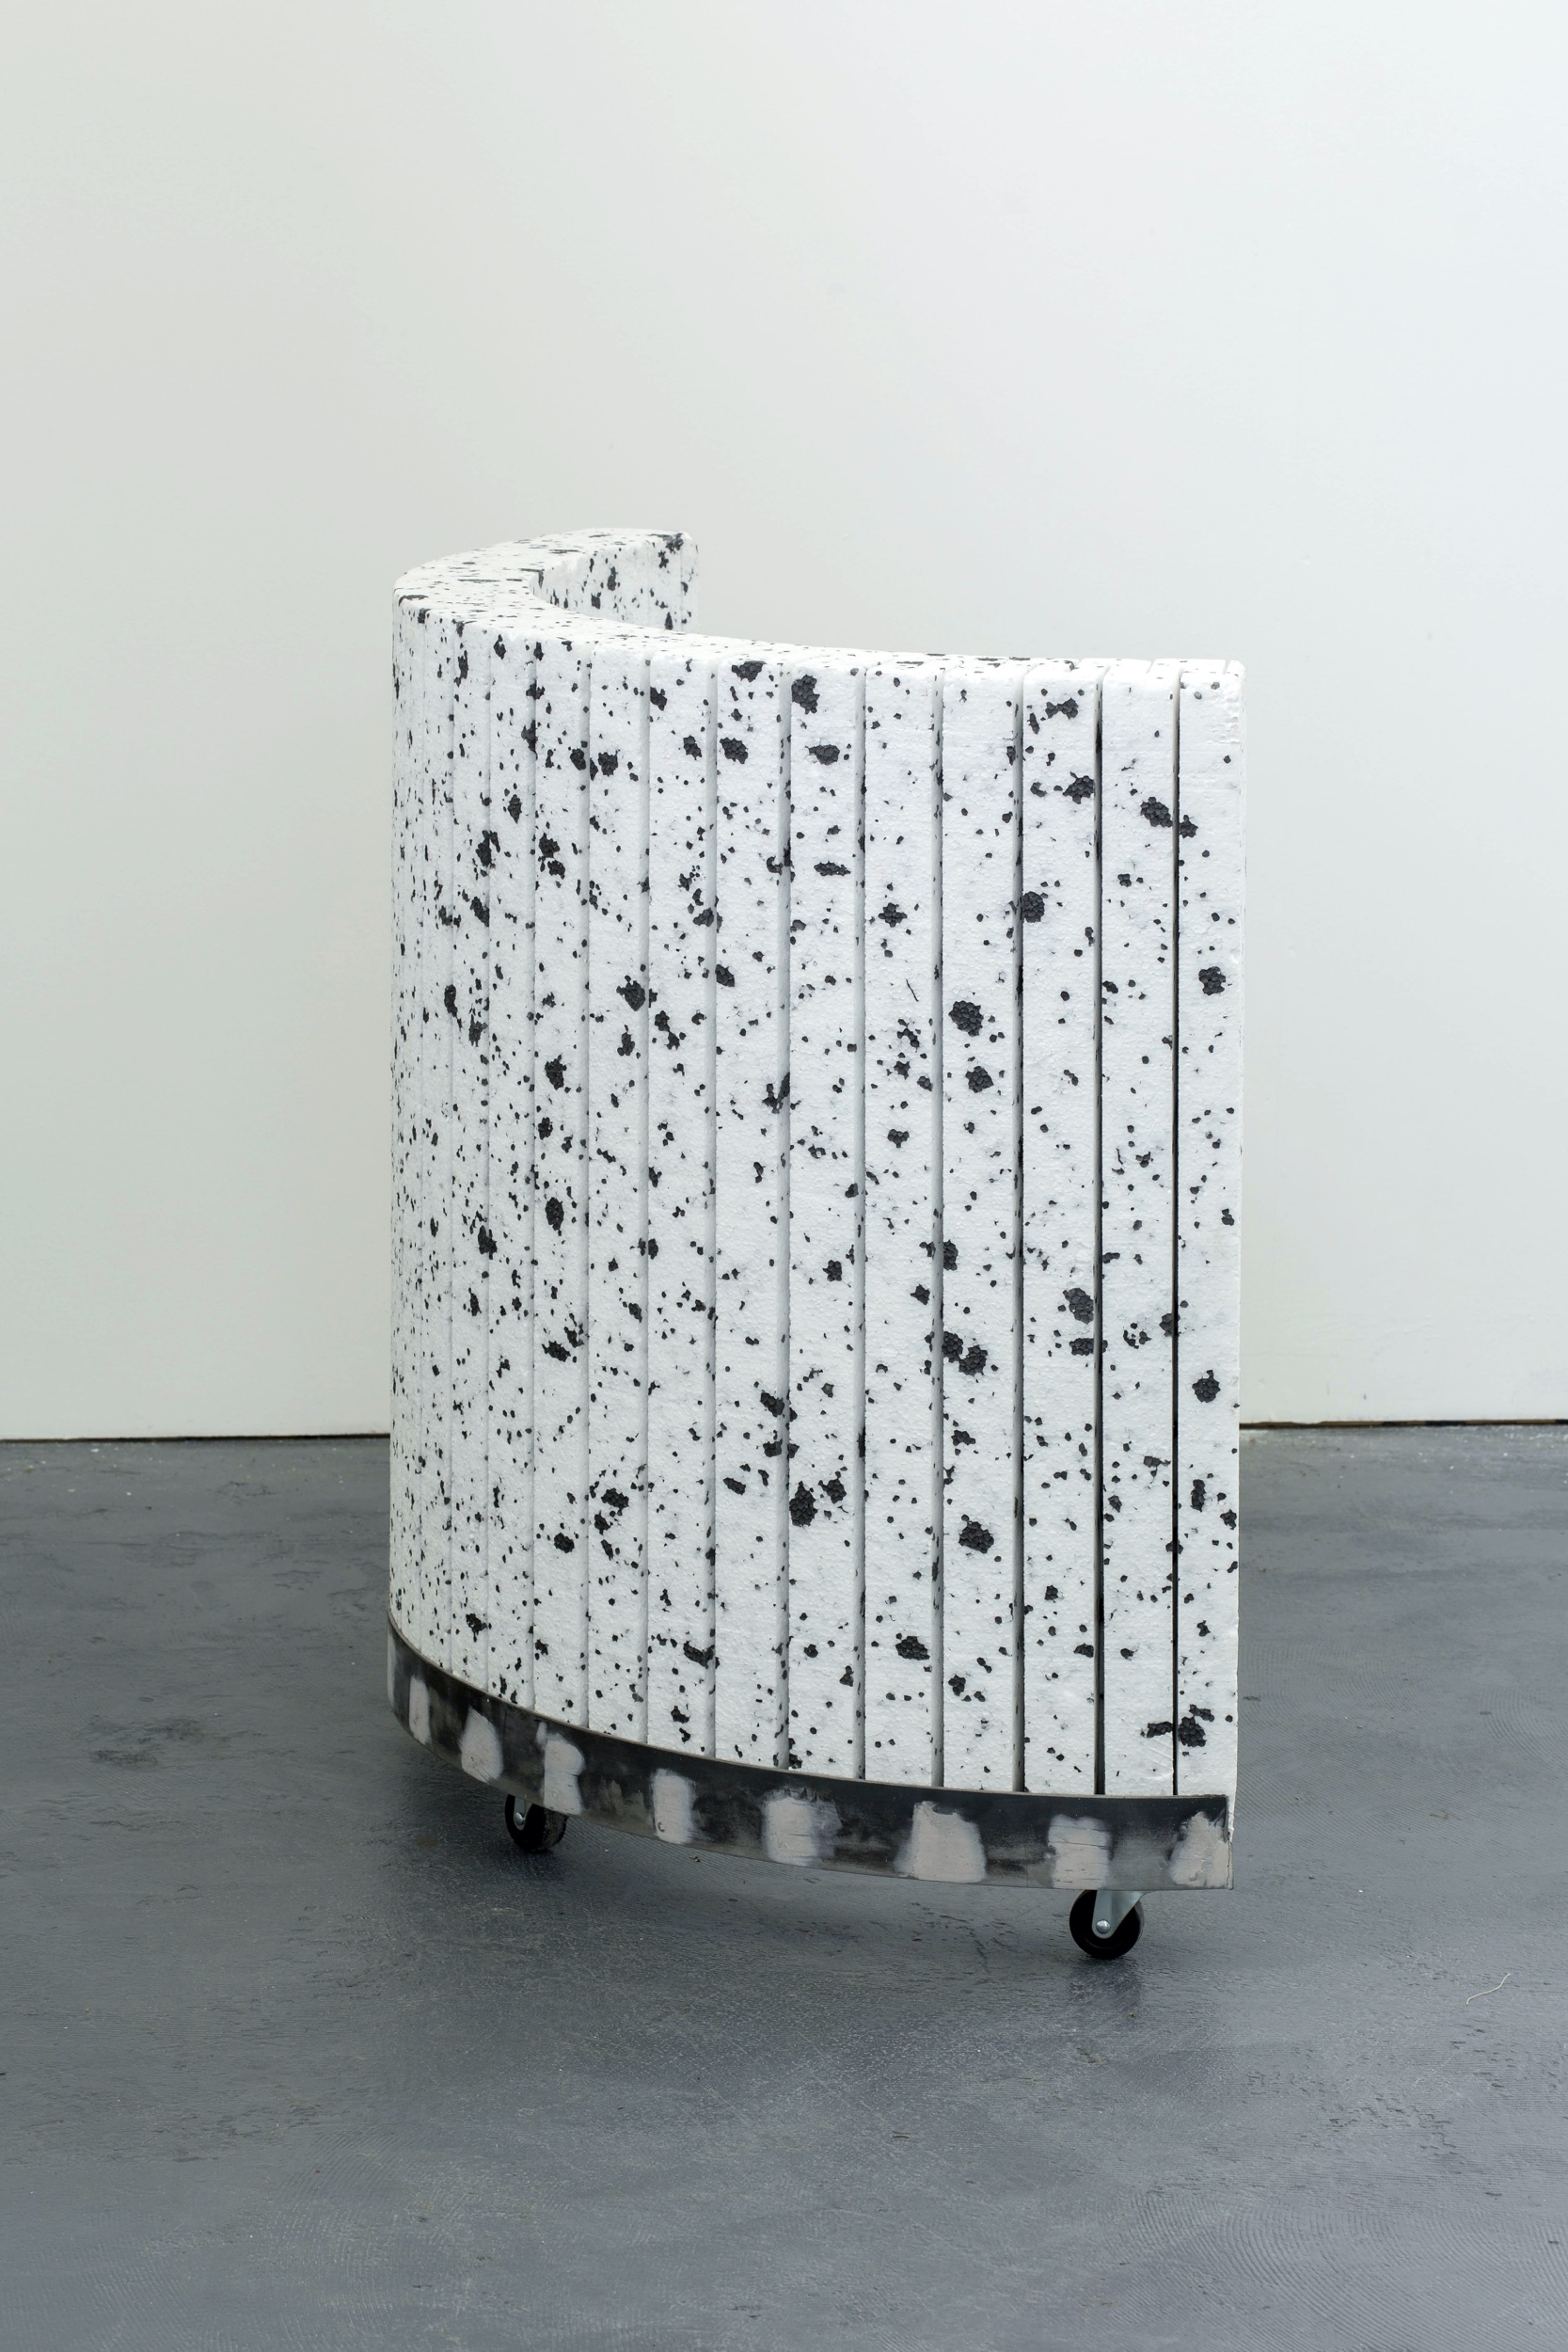 Permanent Transit, New Contemporaries, 2018, Camille Yvert